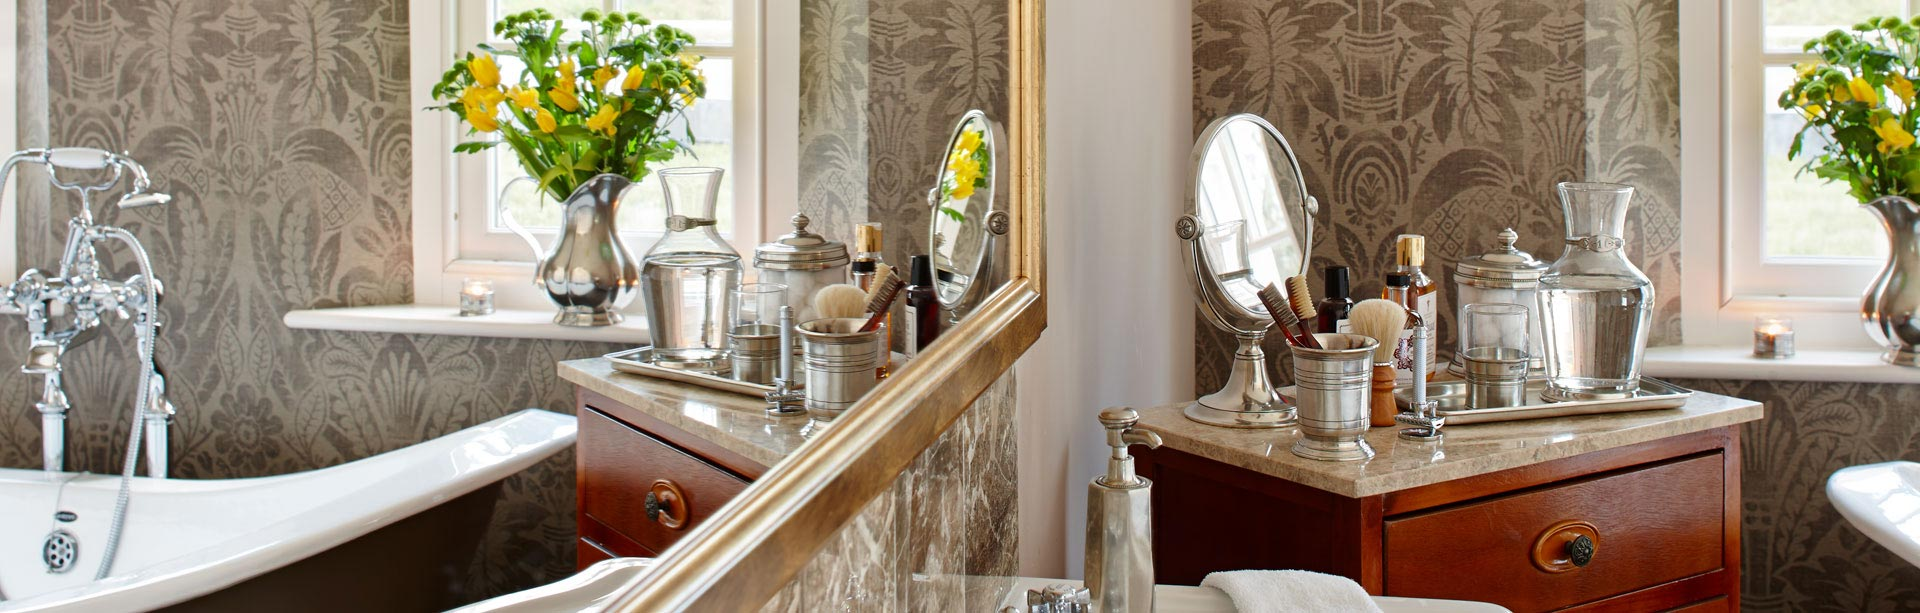 Bath accessories made in Italy